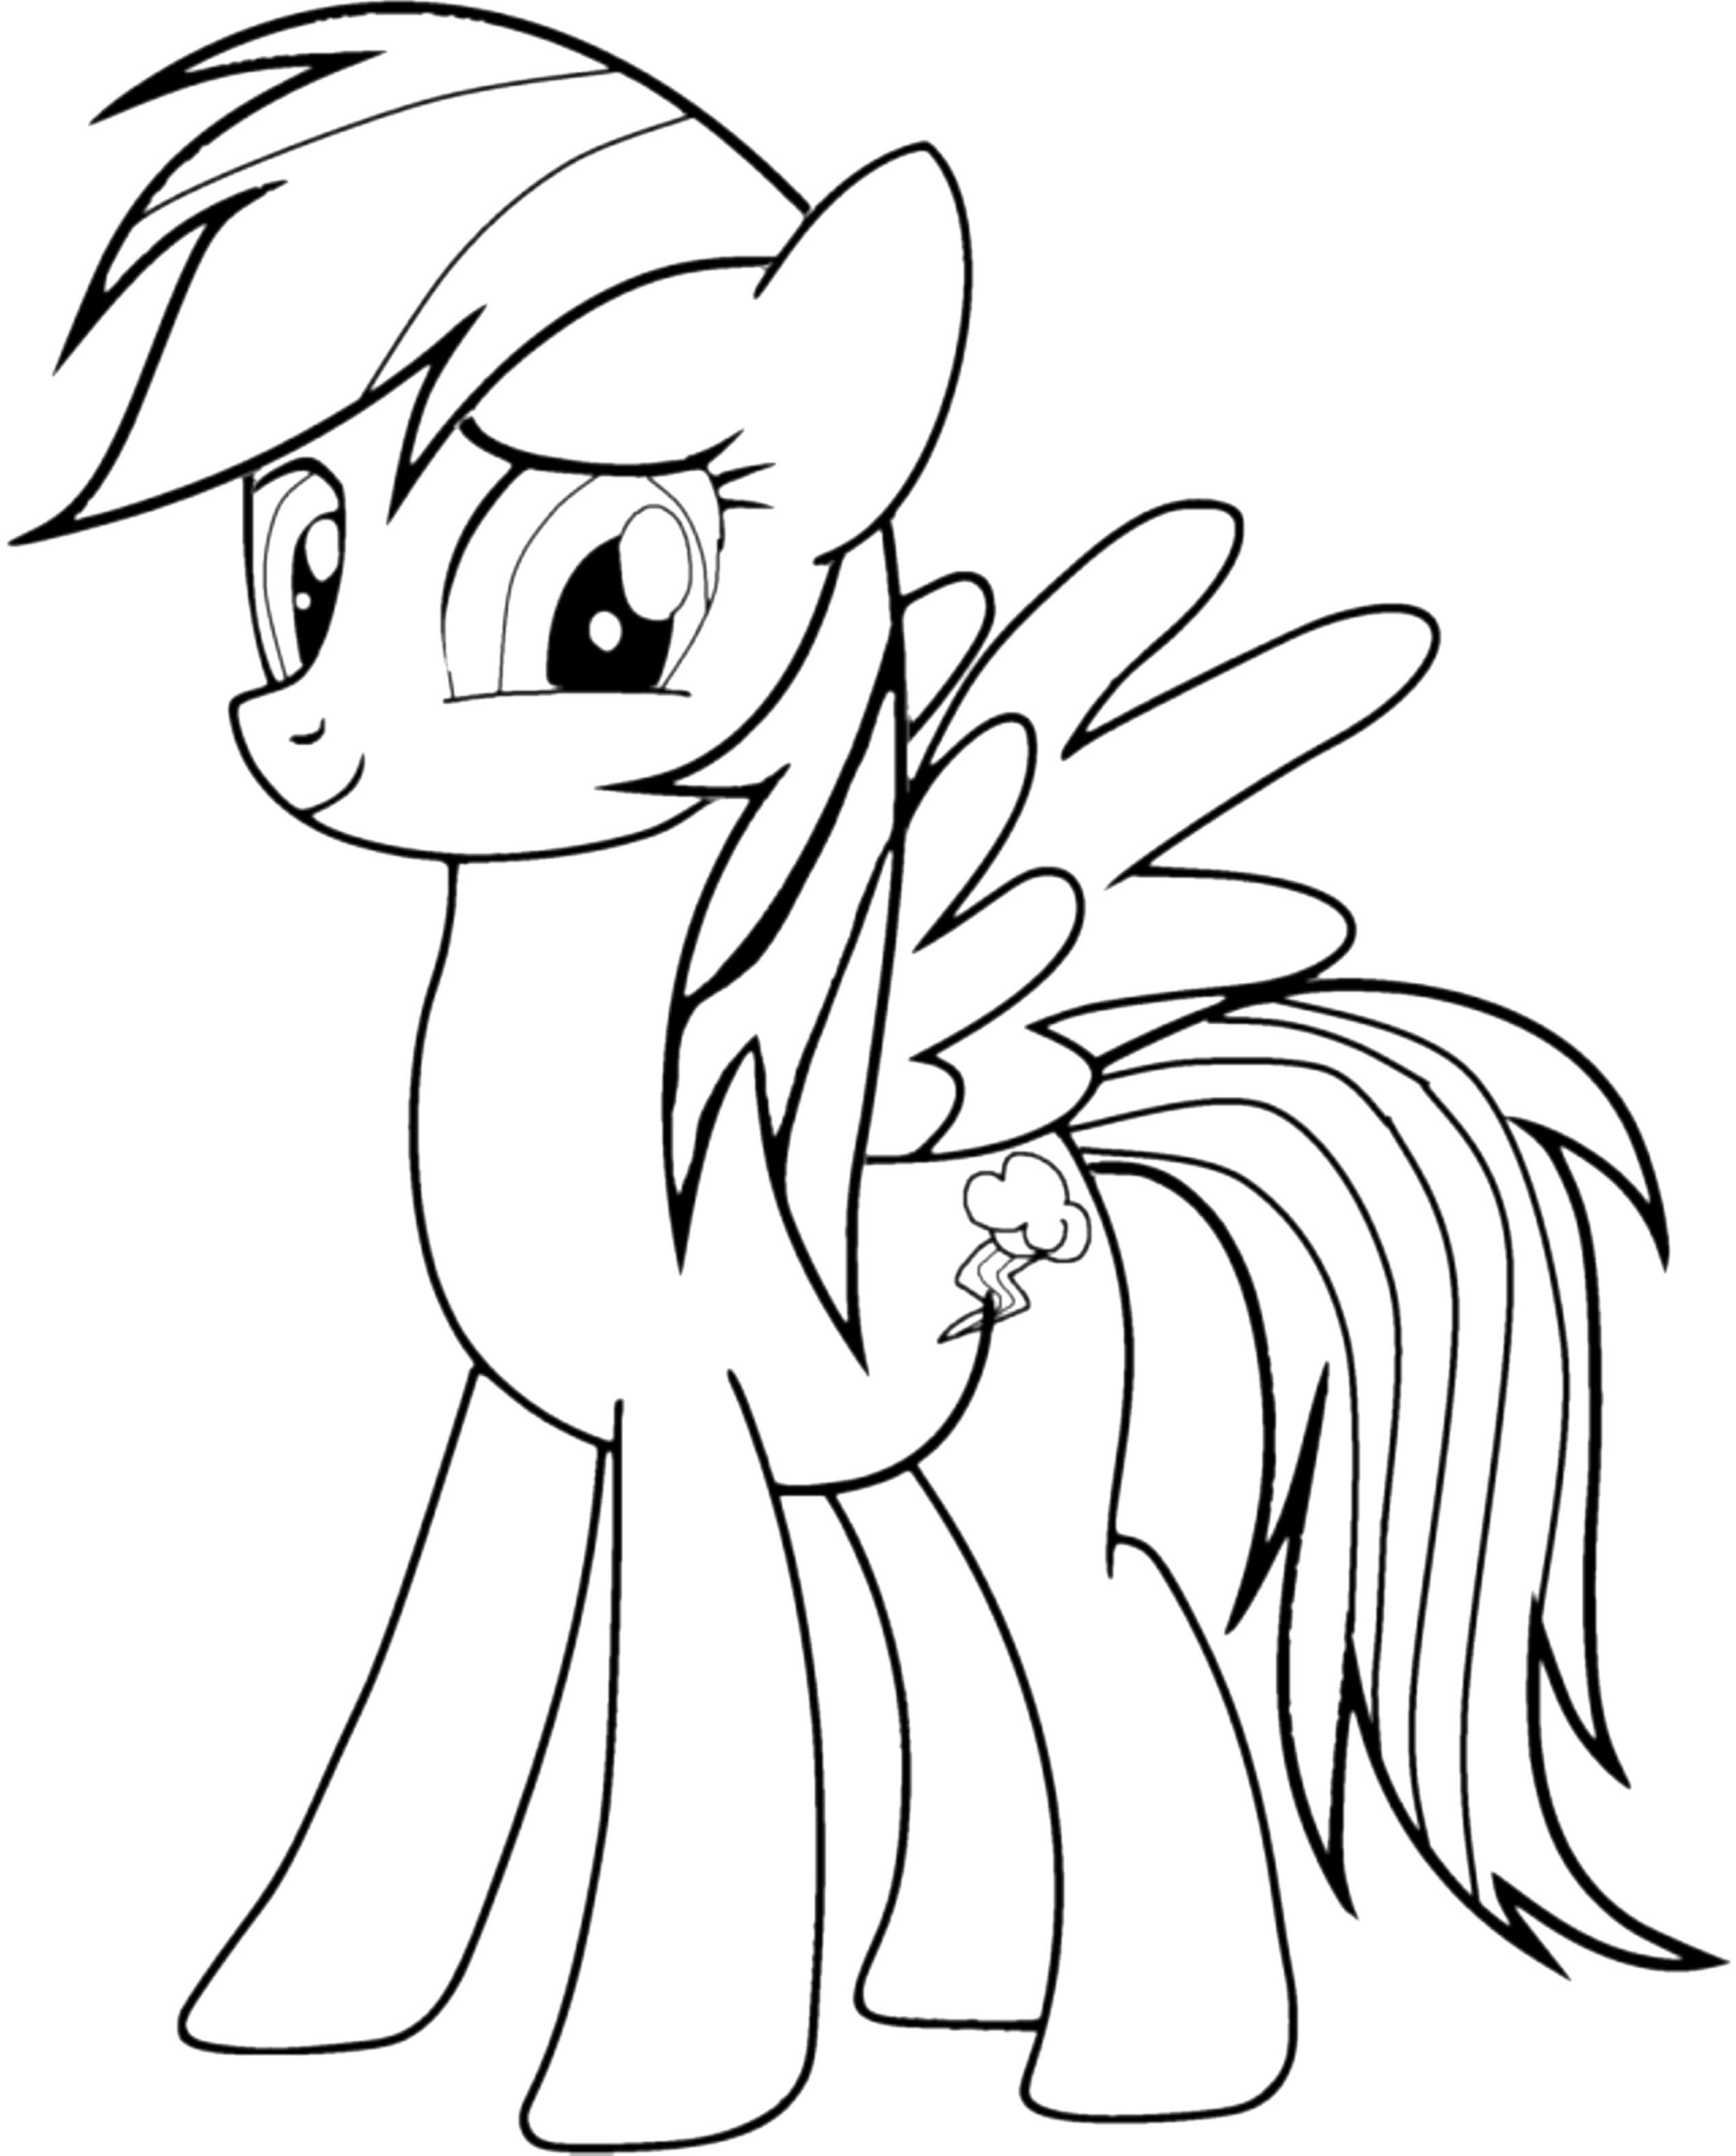 Rainbow Dash Coloring Pages Best For Kids